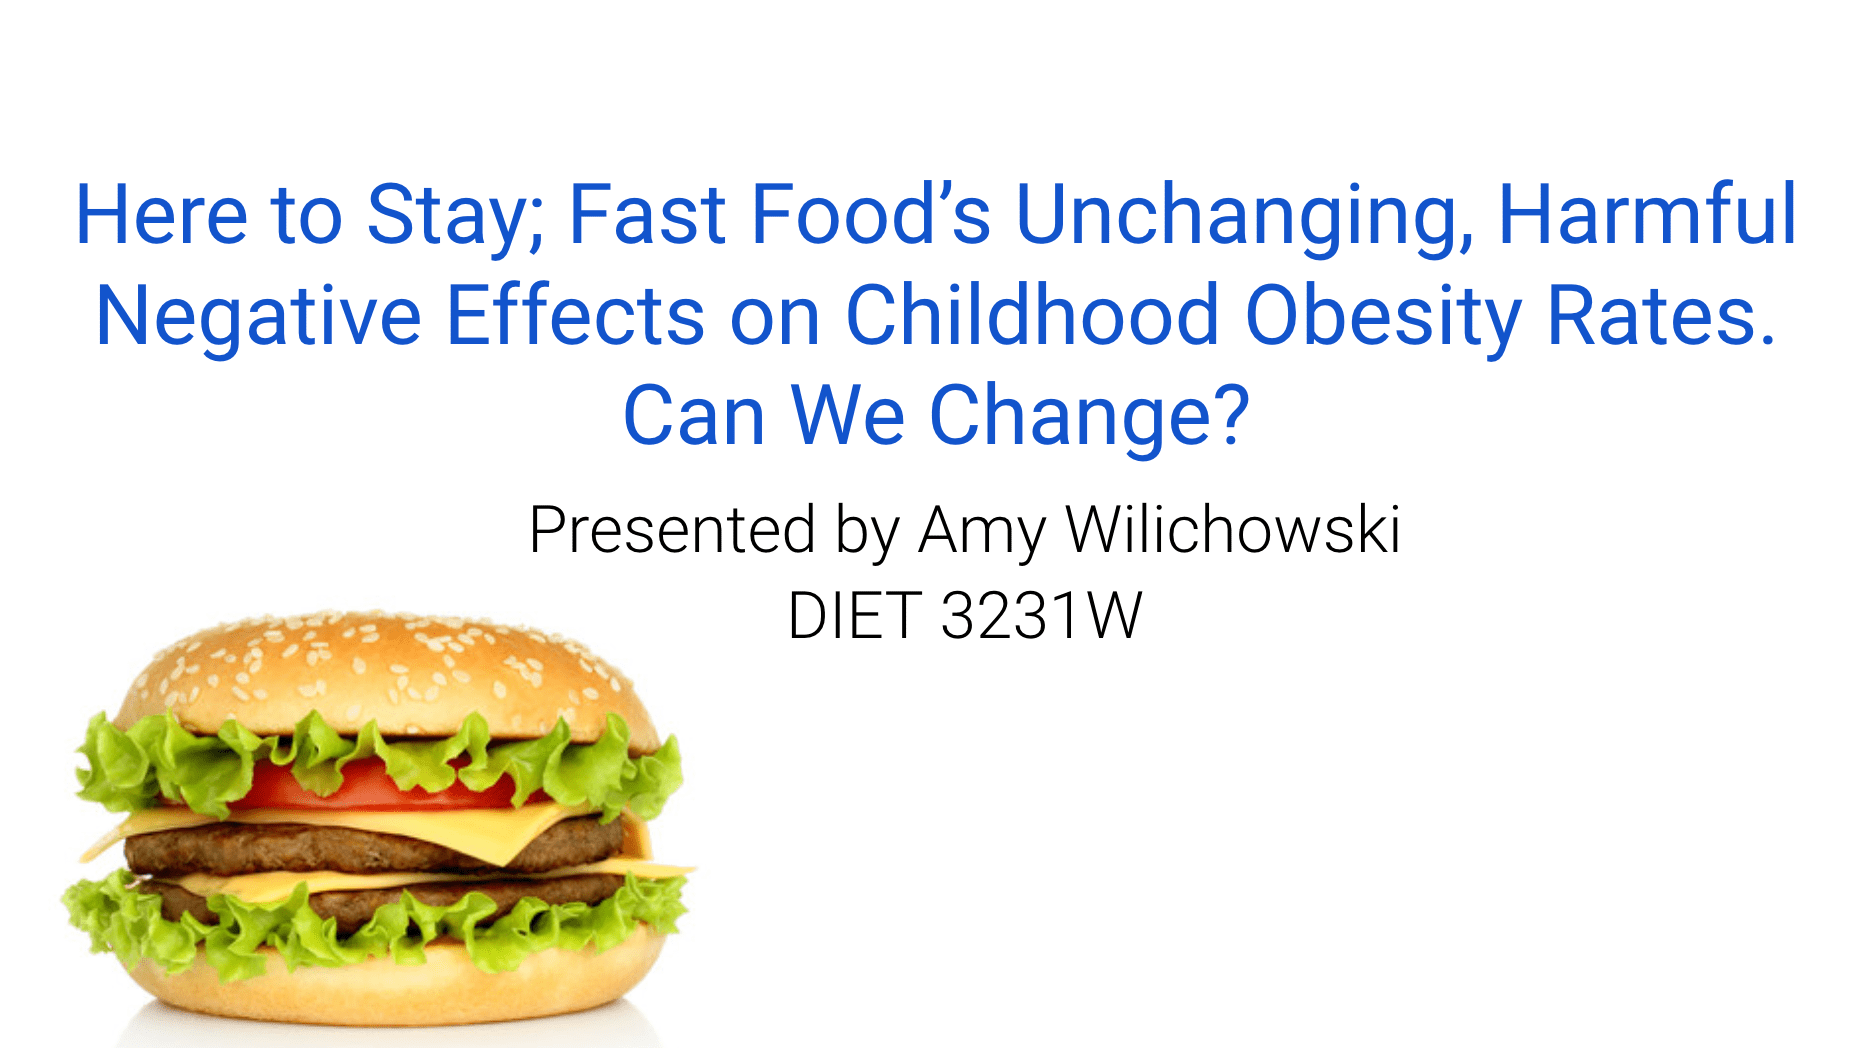 008 Research Paper Screen Shot At Pmfit18762c1048ssl1 Childhood Obesity Marvelous Outline Full